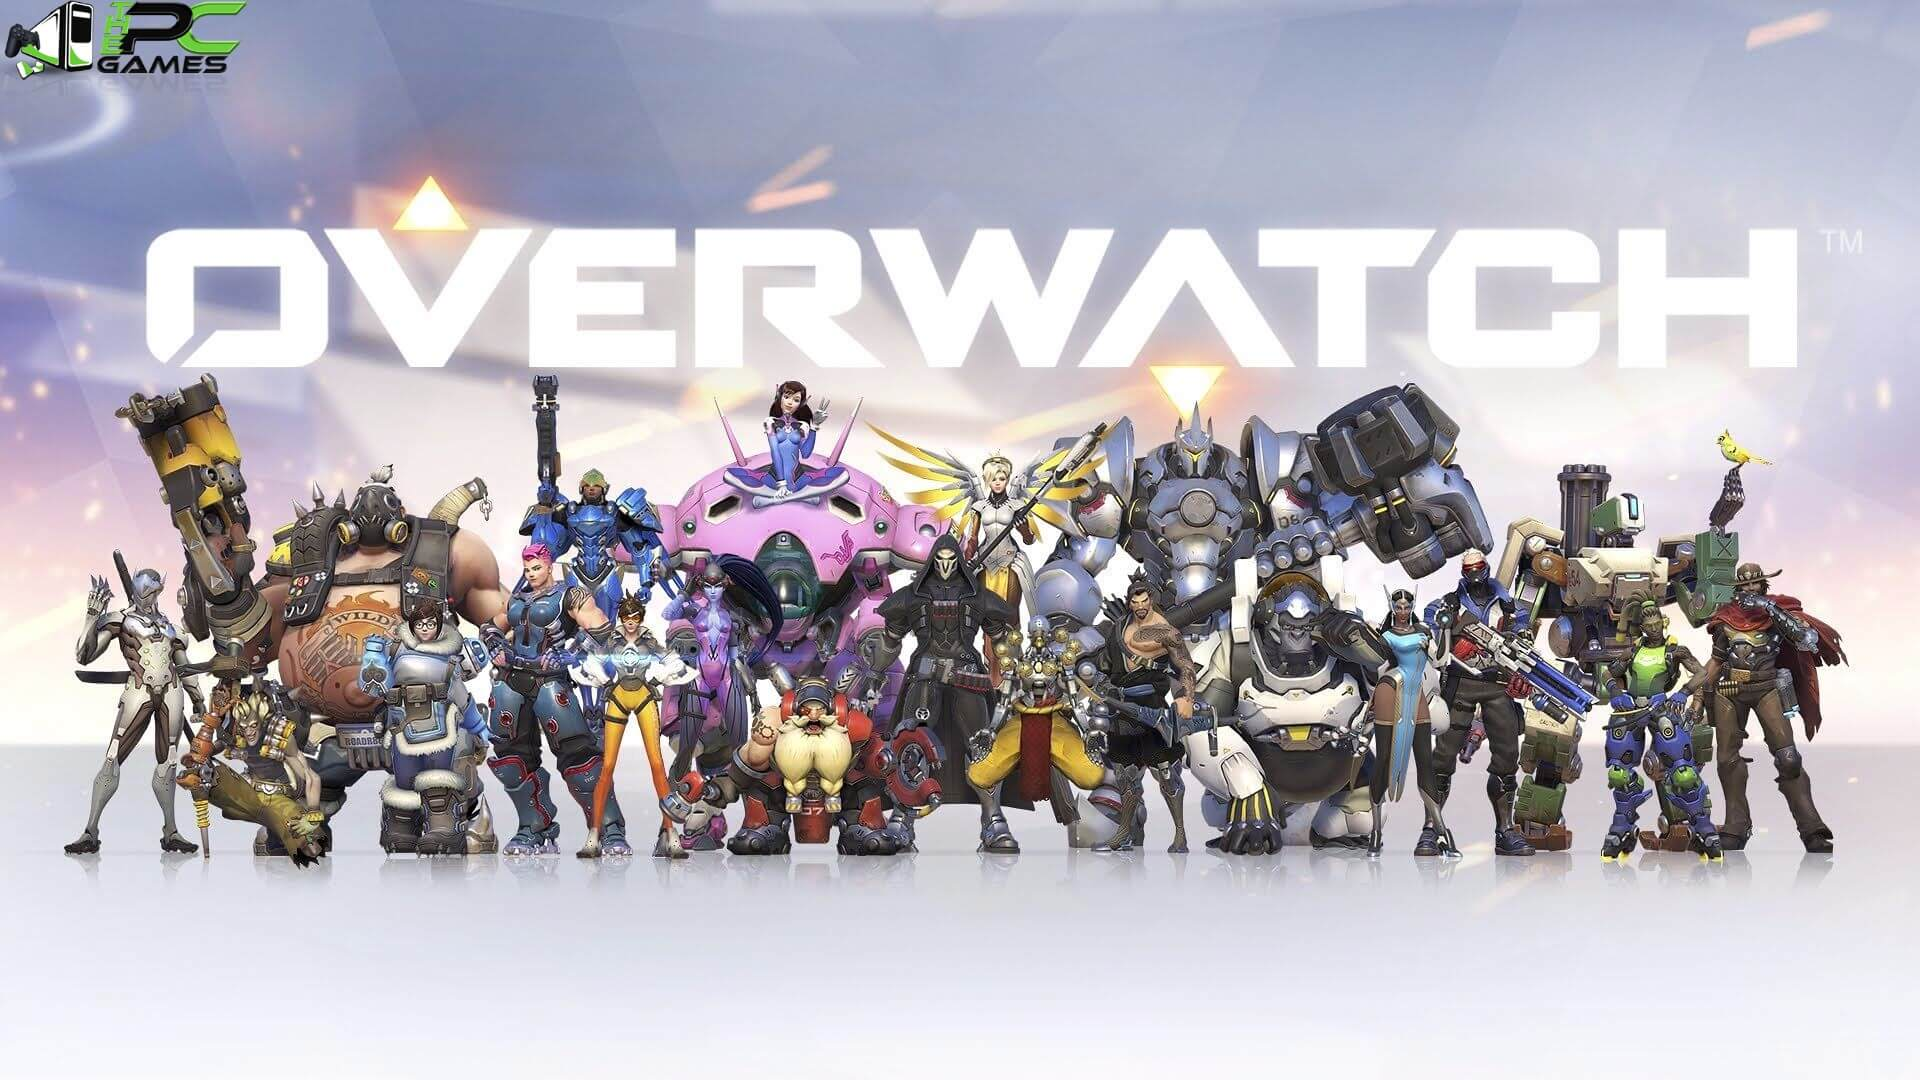 Overwatch Free Download